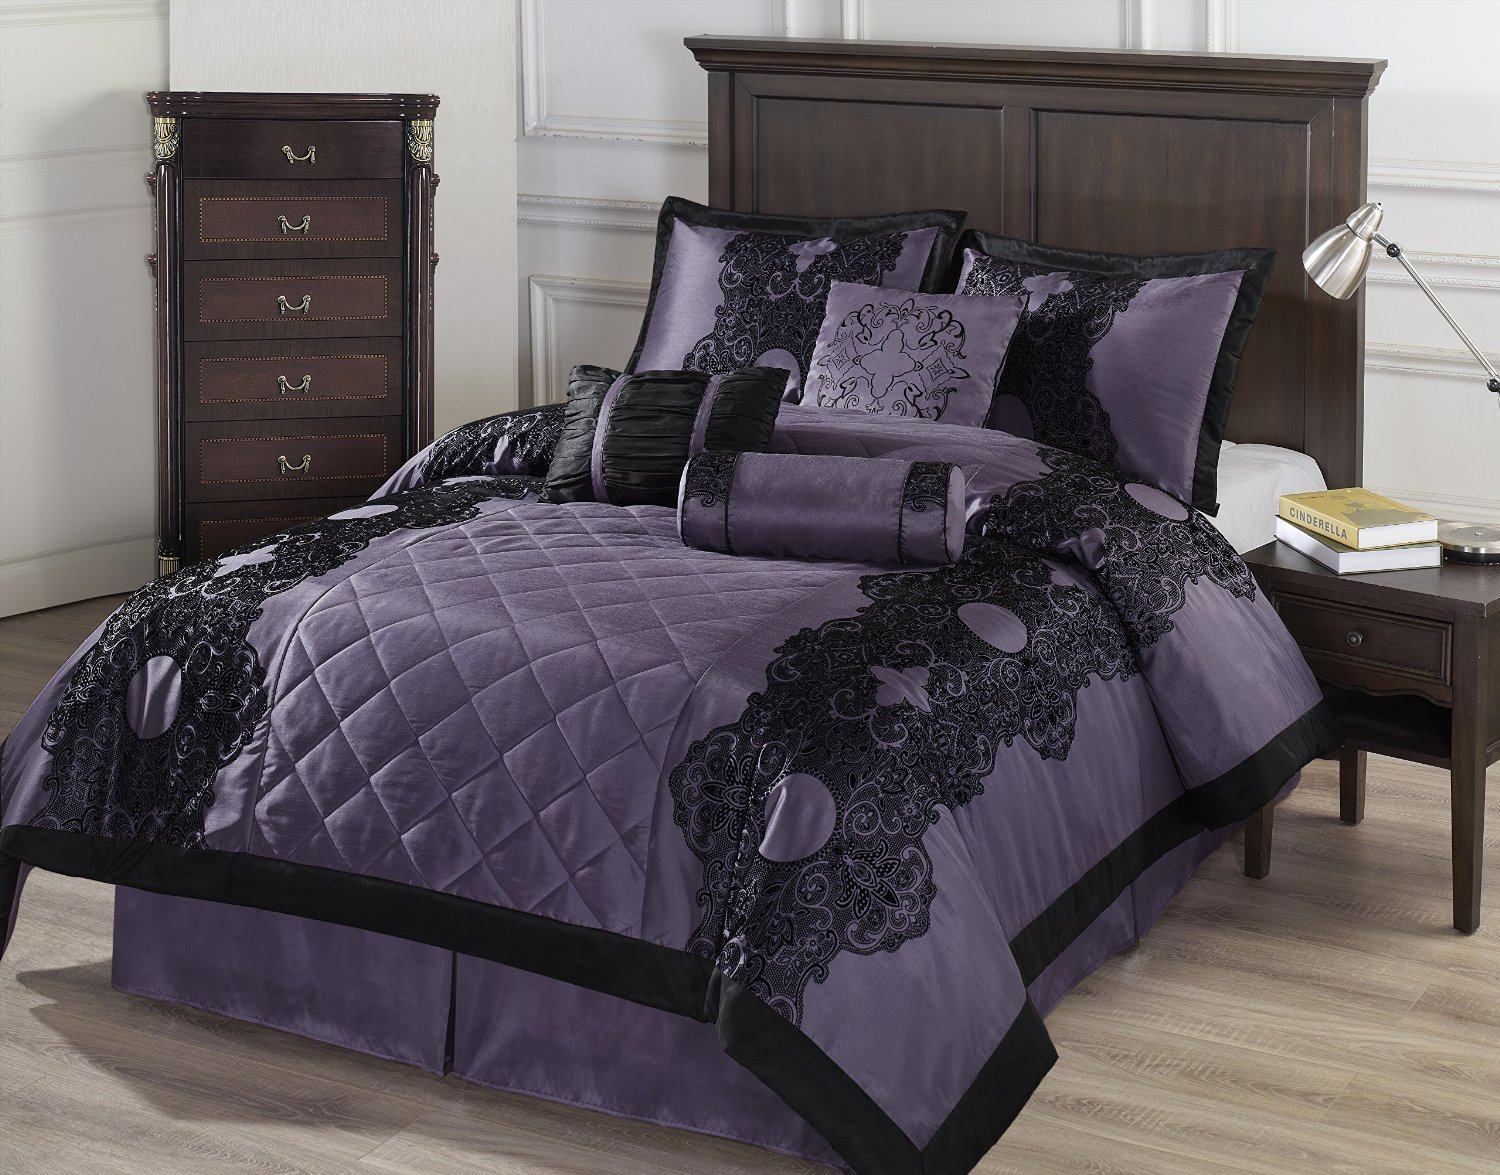 Total Fab: Deep Dark Purple Comforters & Bedding Sets